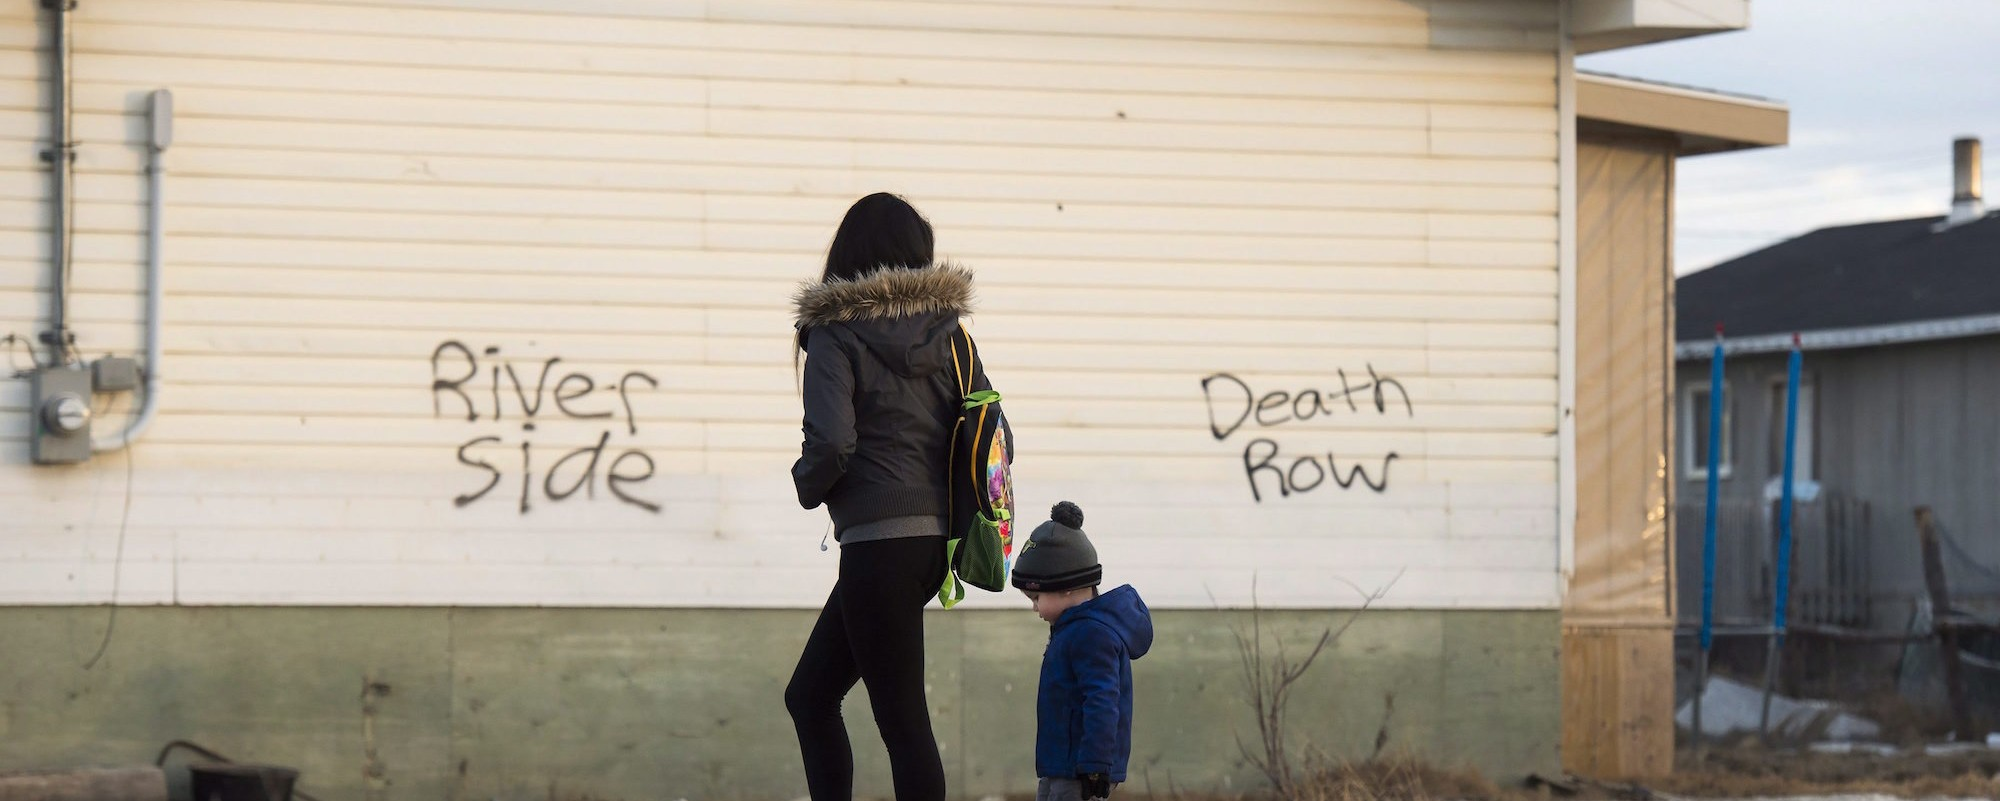 an analysis of the poverty in canada Windsor-west has one of the highest child poverty rates in the country, according to an analysis by anti-poverty advocacy group campaign 2000 the organization ranked all 338 federal ridings in.